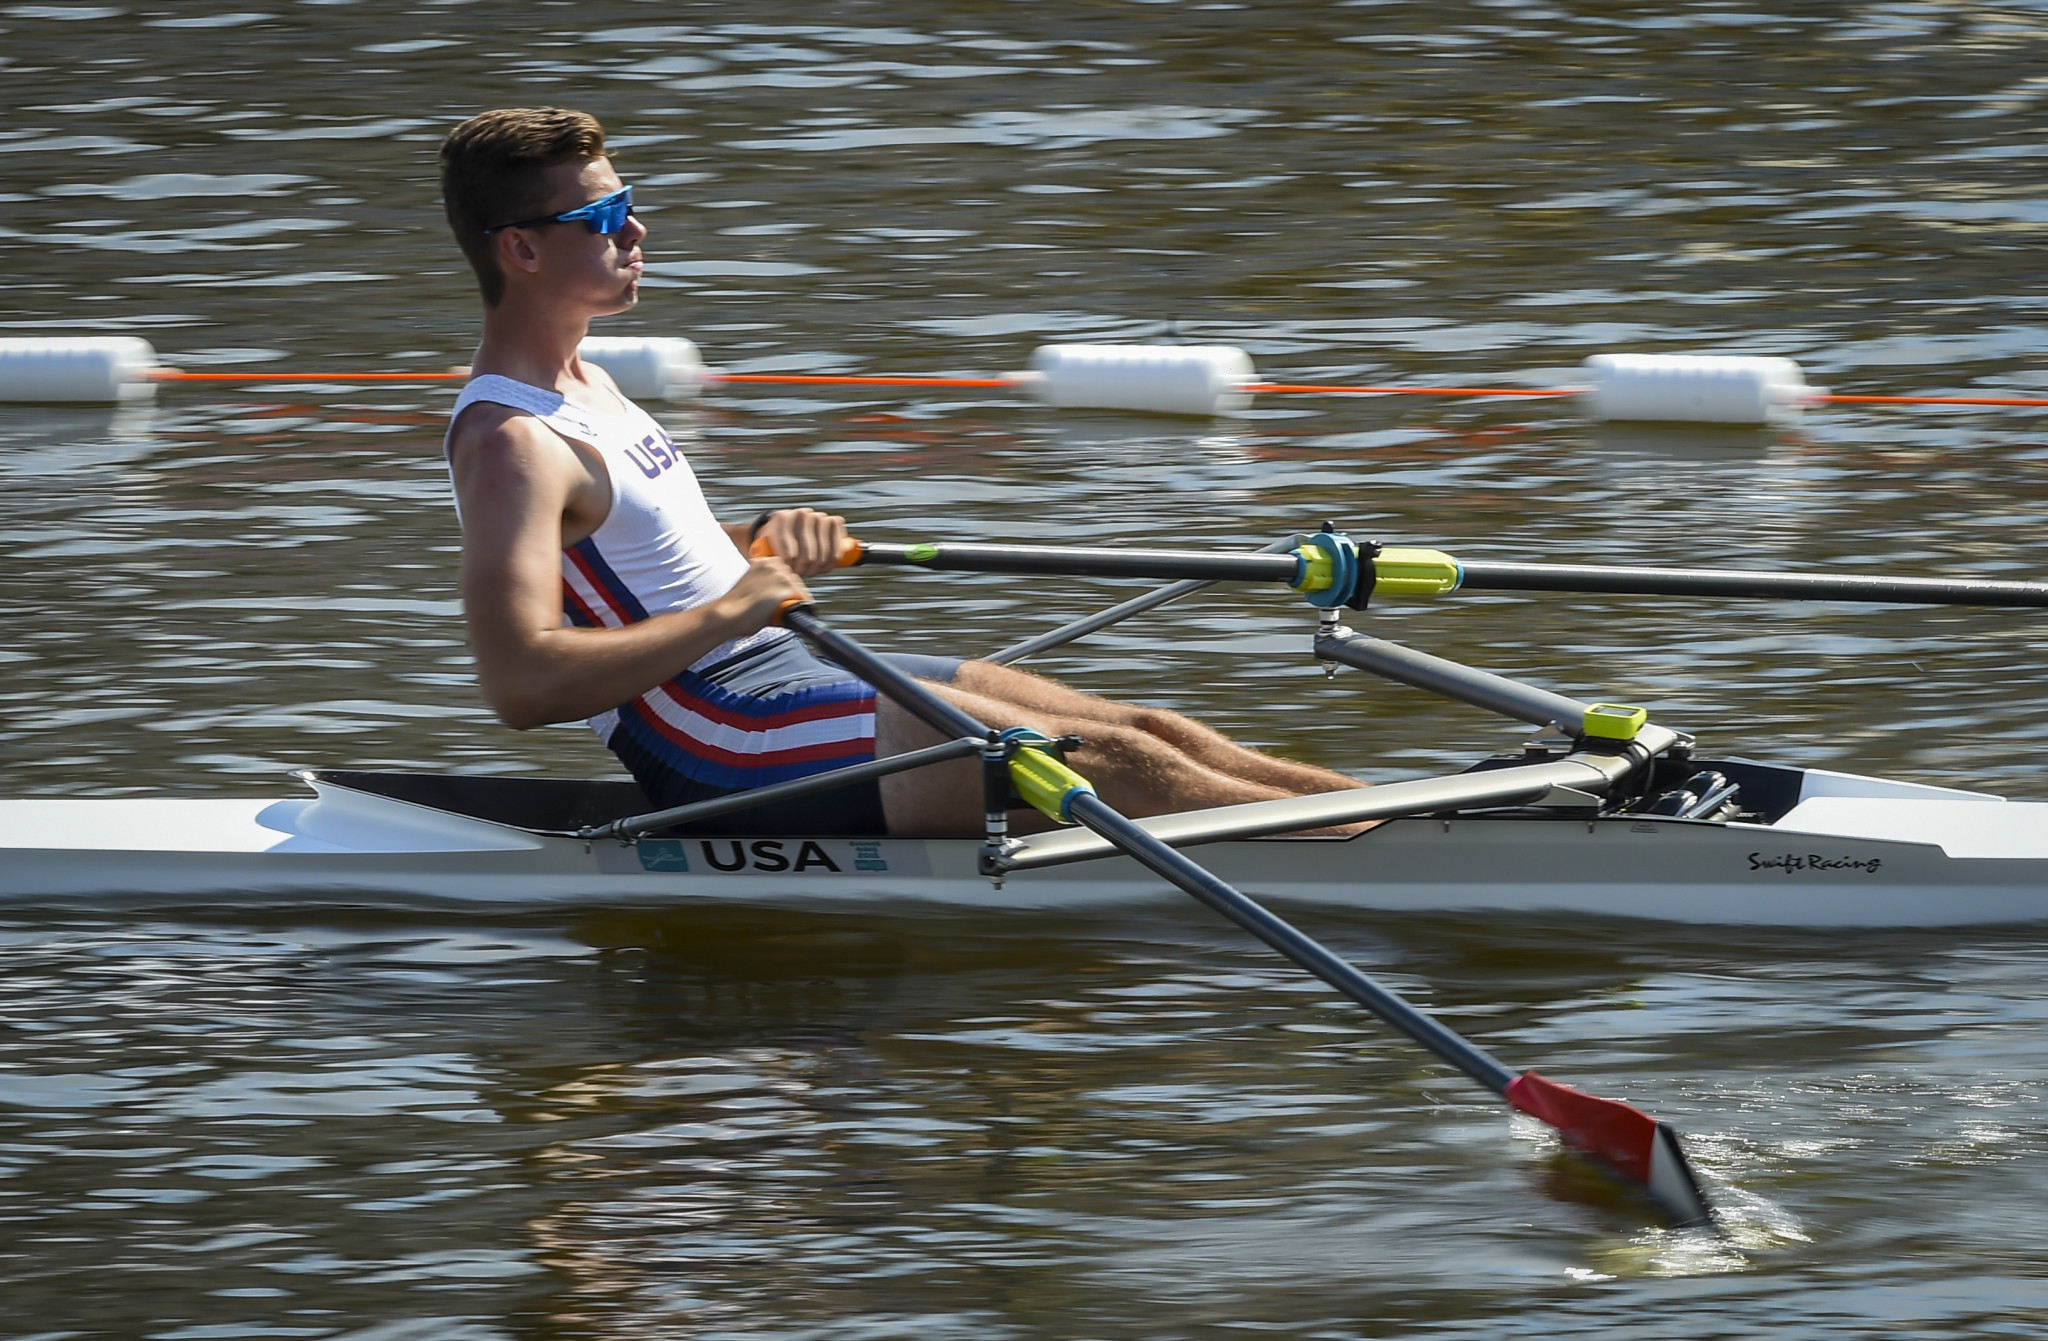 Americas Olympic and Paralympic rowing qualifier to get underway in Rio de Janeiro